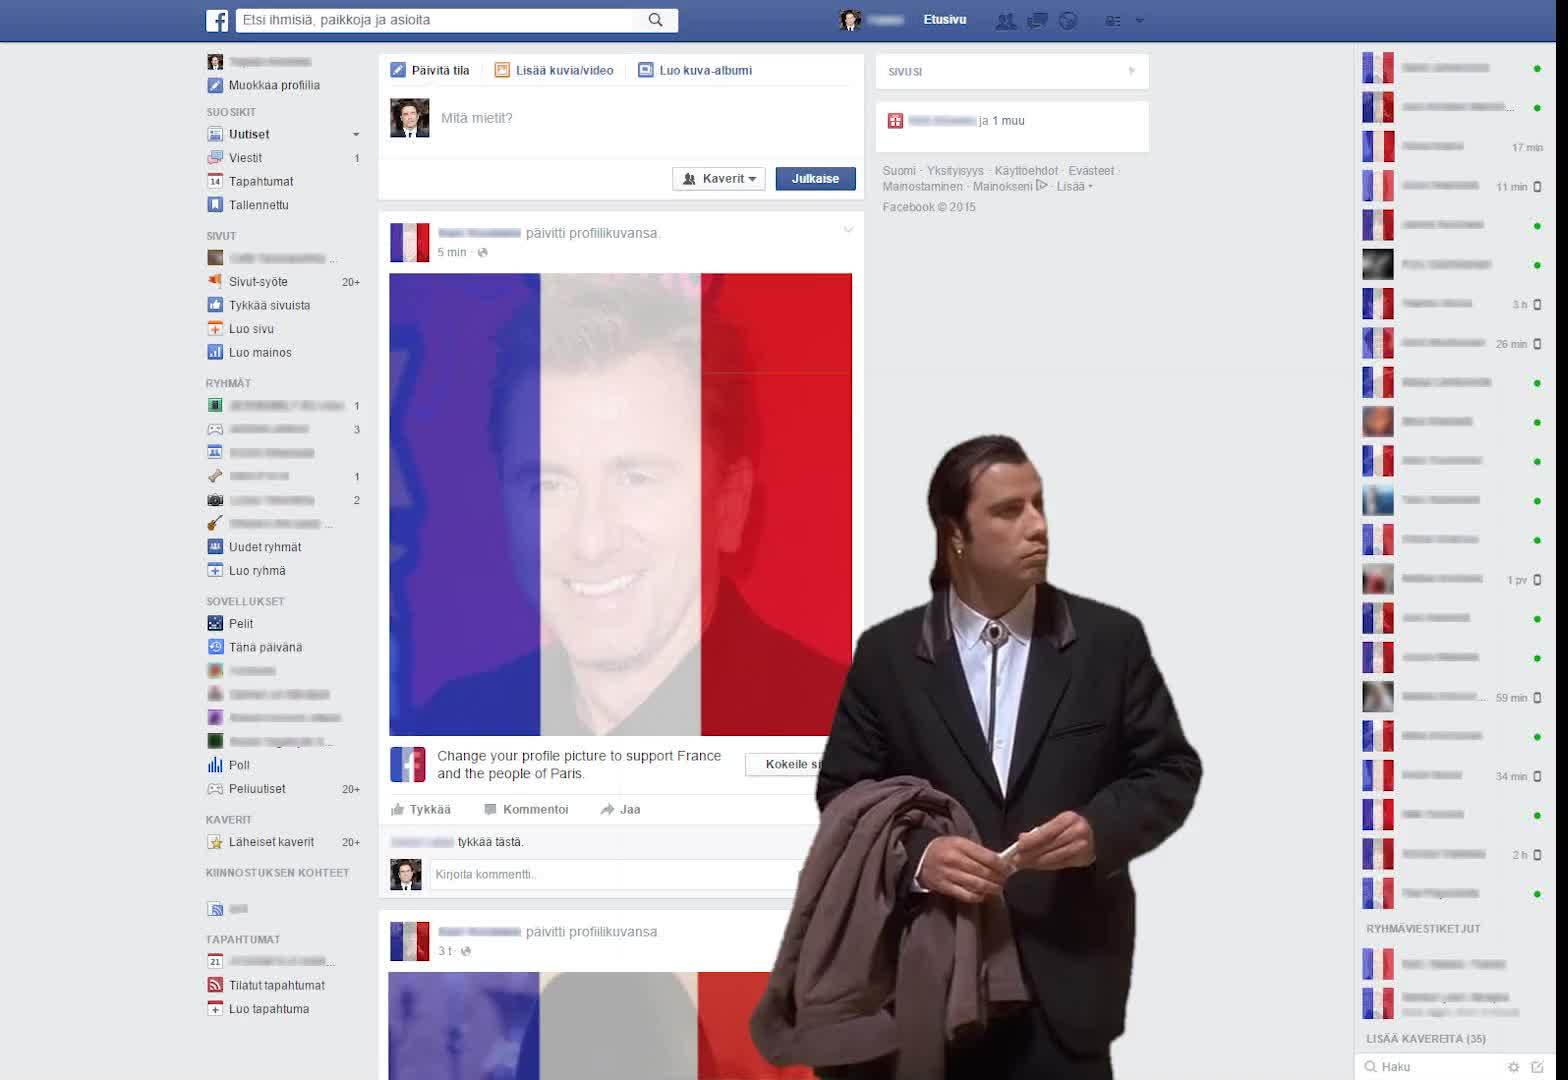 confusedtravolta, When I log in to Facebook after the terrors in Paris. GIFs